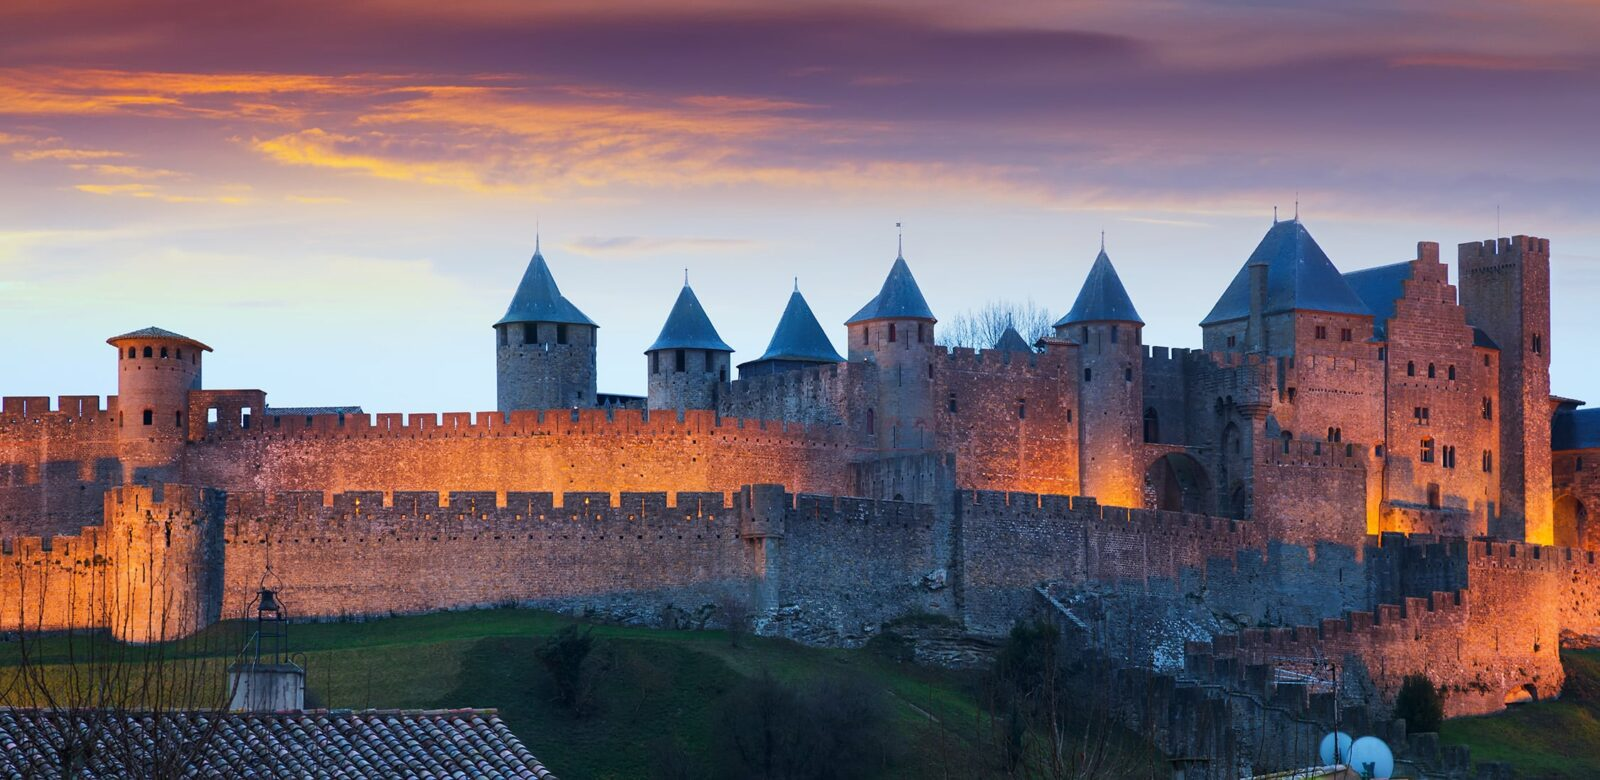 Real Estate Market Update: The Medieval Investor